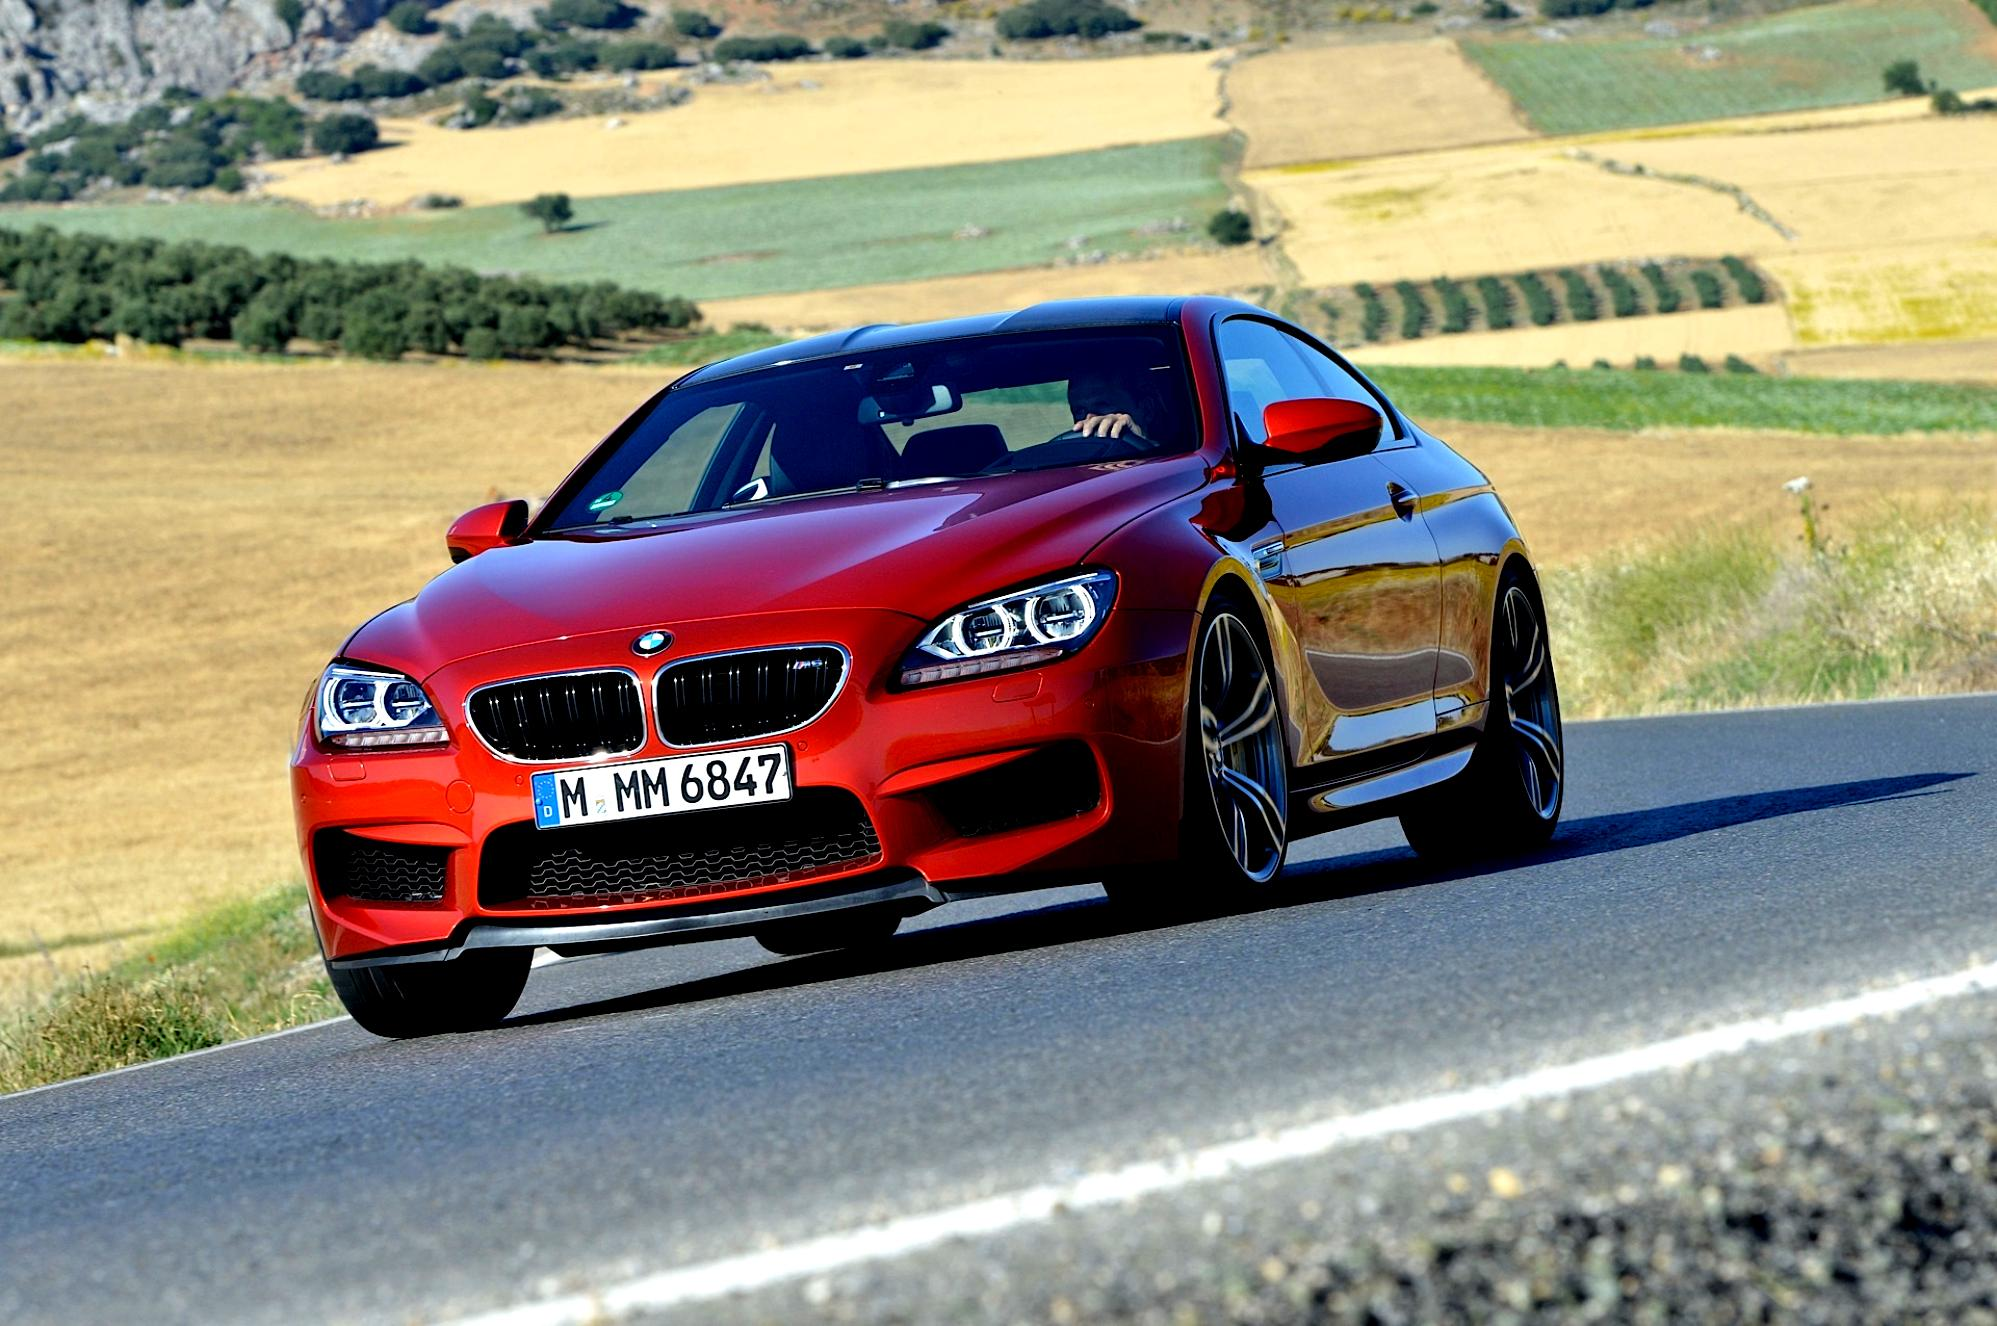 BMW M6 Coupe F13 2012 #61